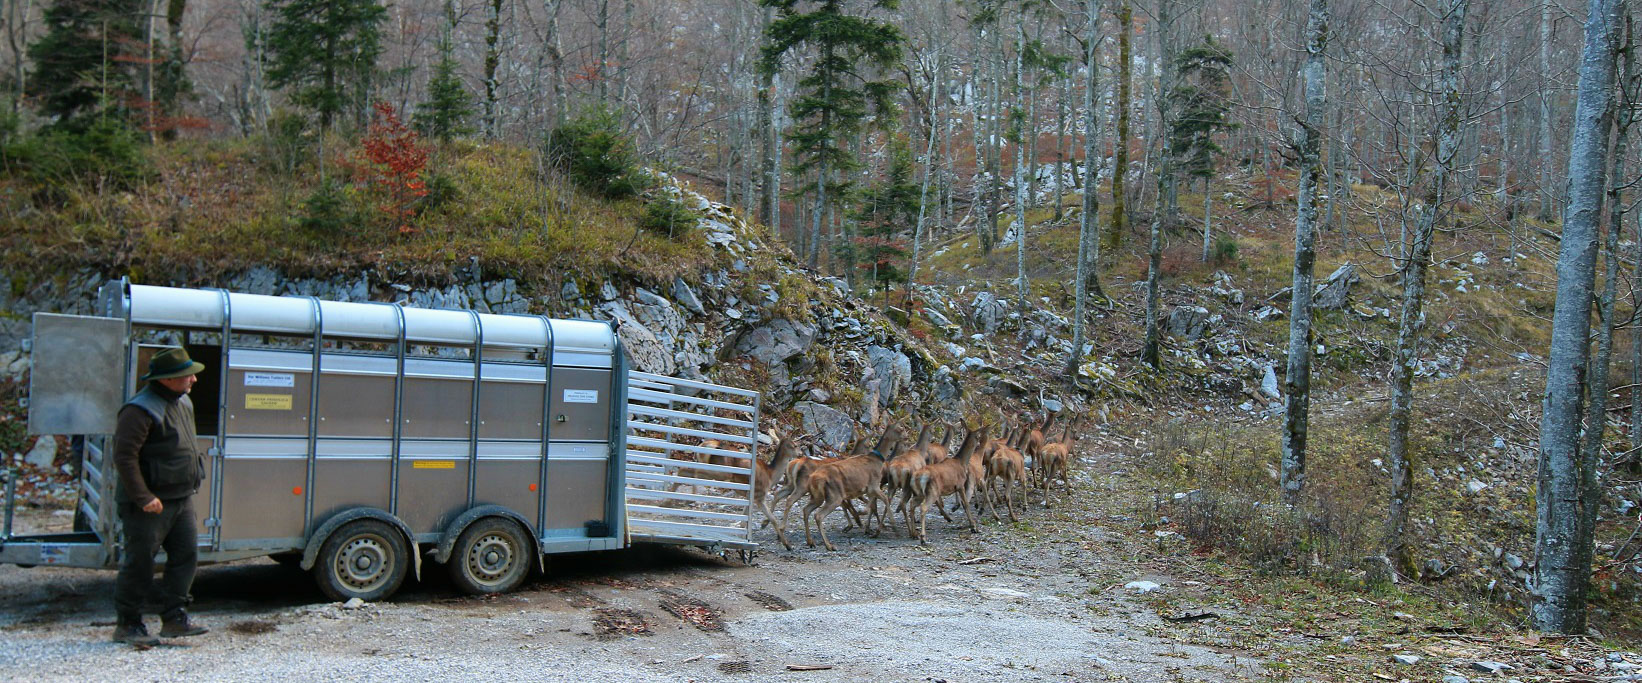 Davor Krmpotic, Rewilding Velebit team leader, releases 36 red deer into the Velebit Wildlife Reserve.